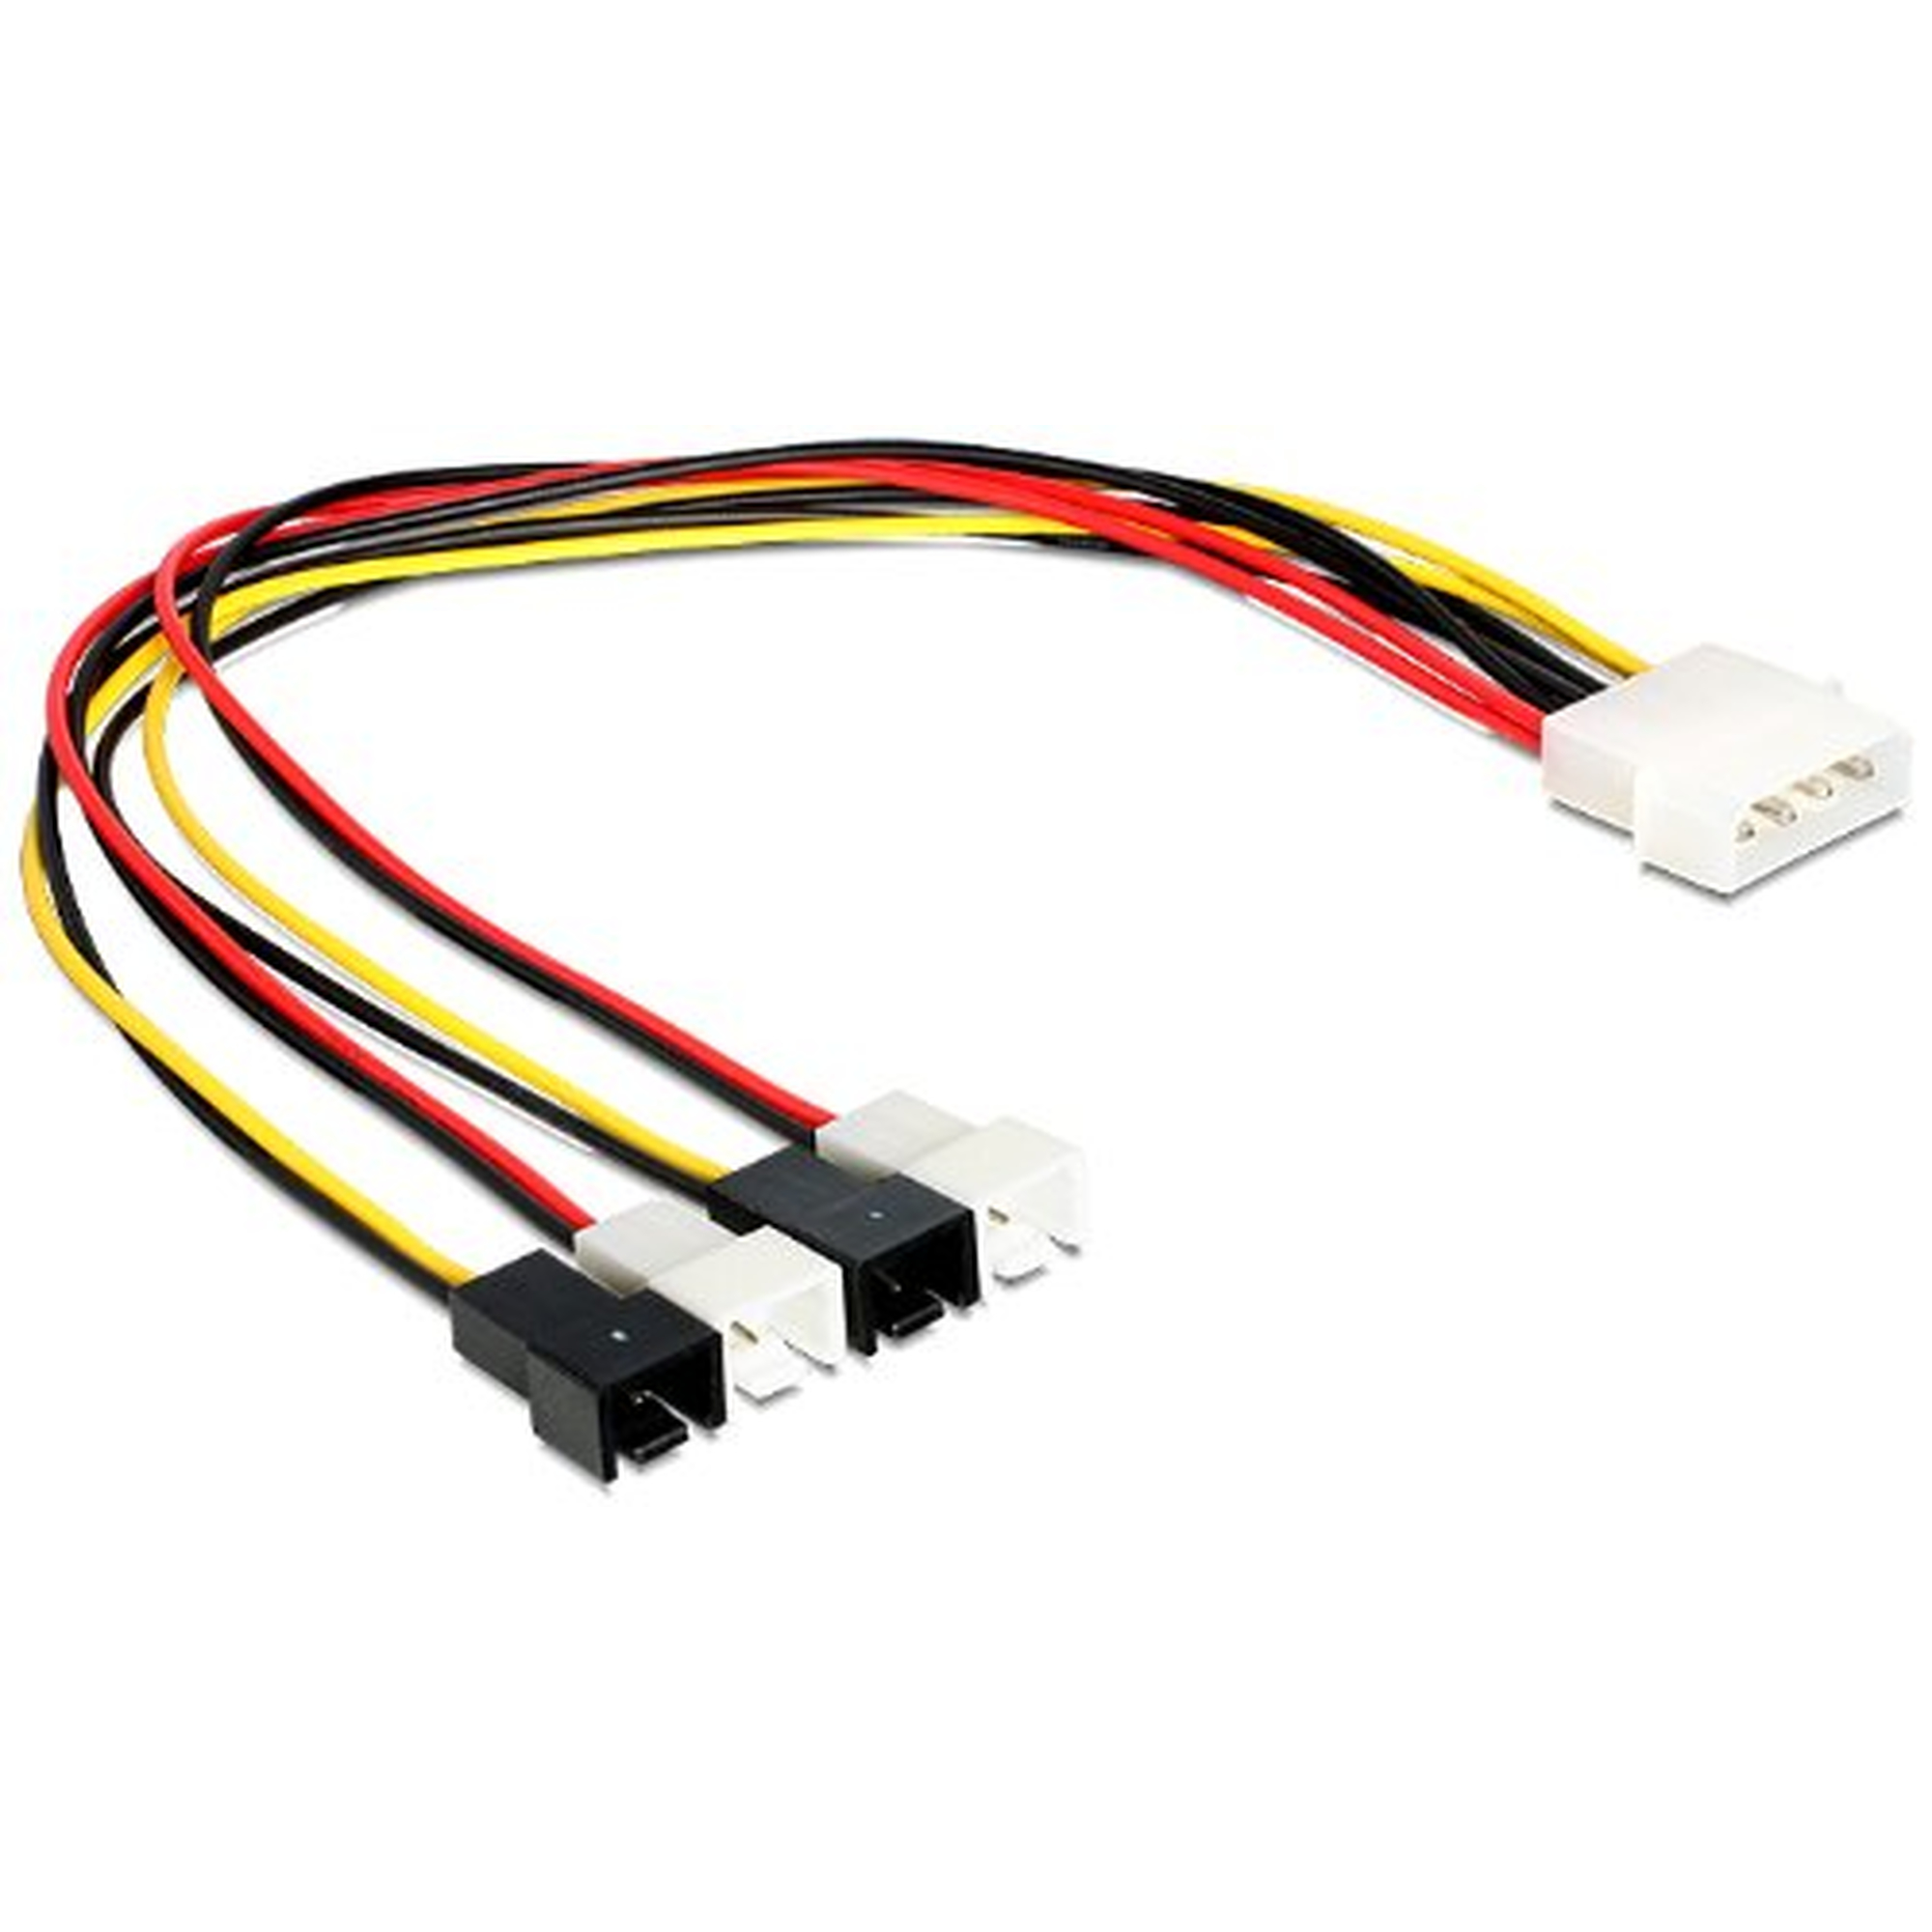 DeLOCK Kabel Power Molex 4pin ST > 4x 2pin St Lüfter